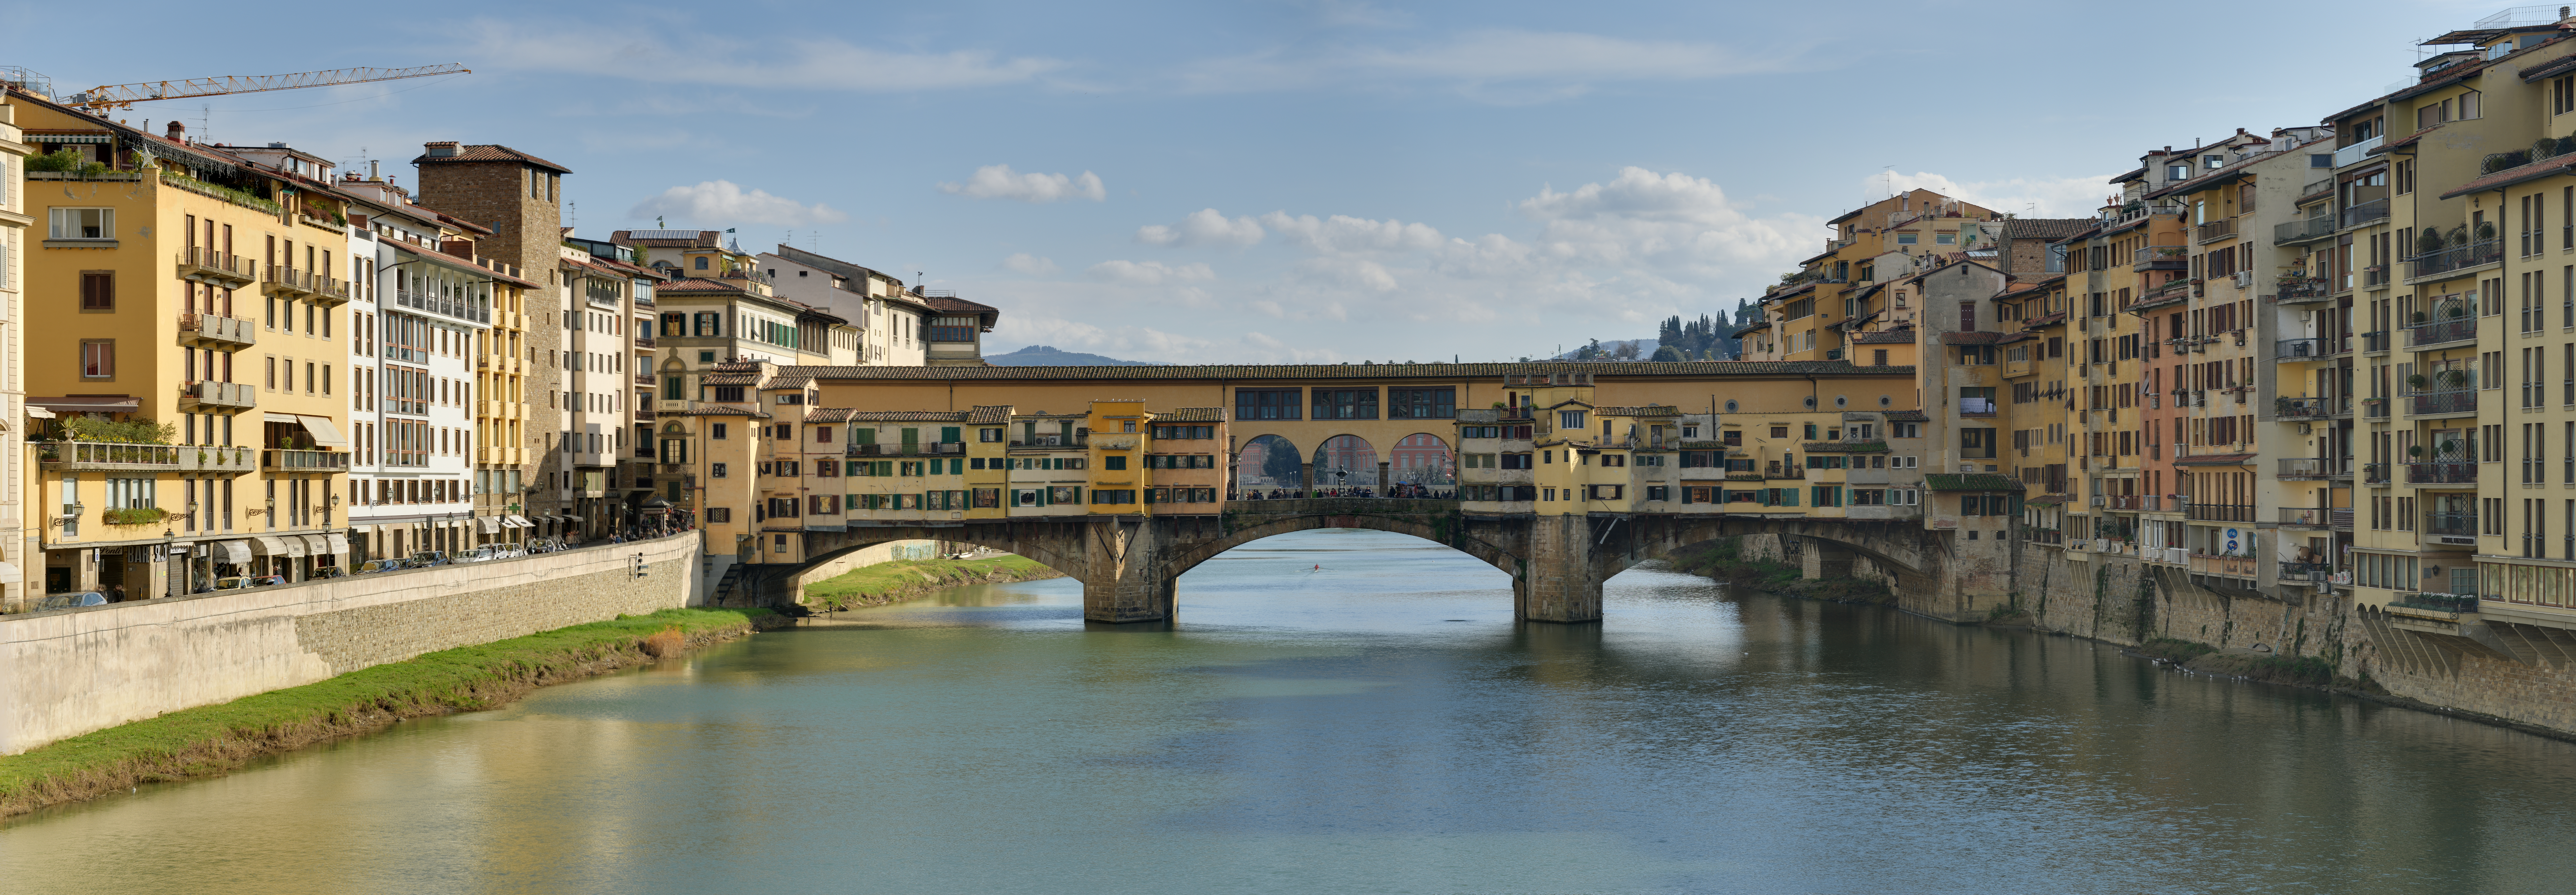 Panorama_of_the_Ponte_Vecchio_in_Florenc